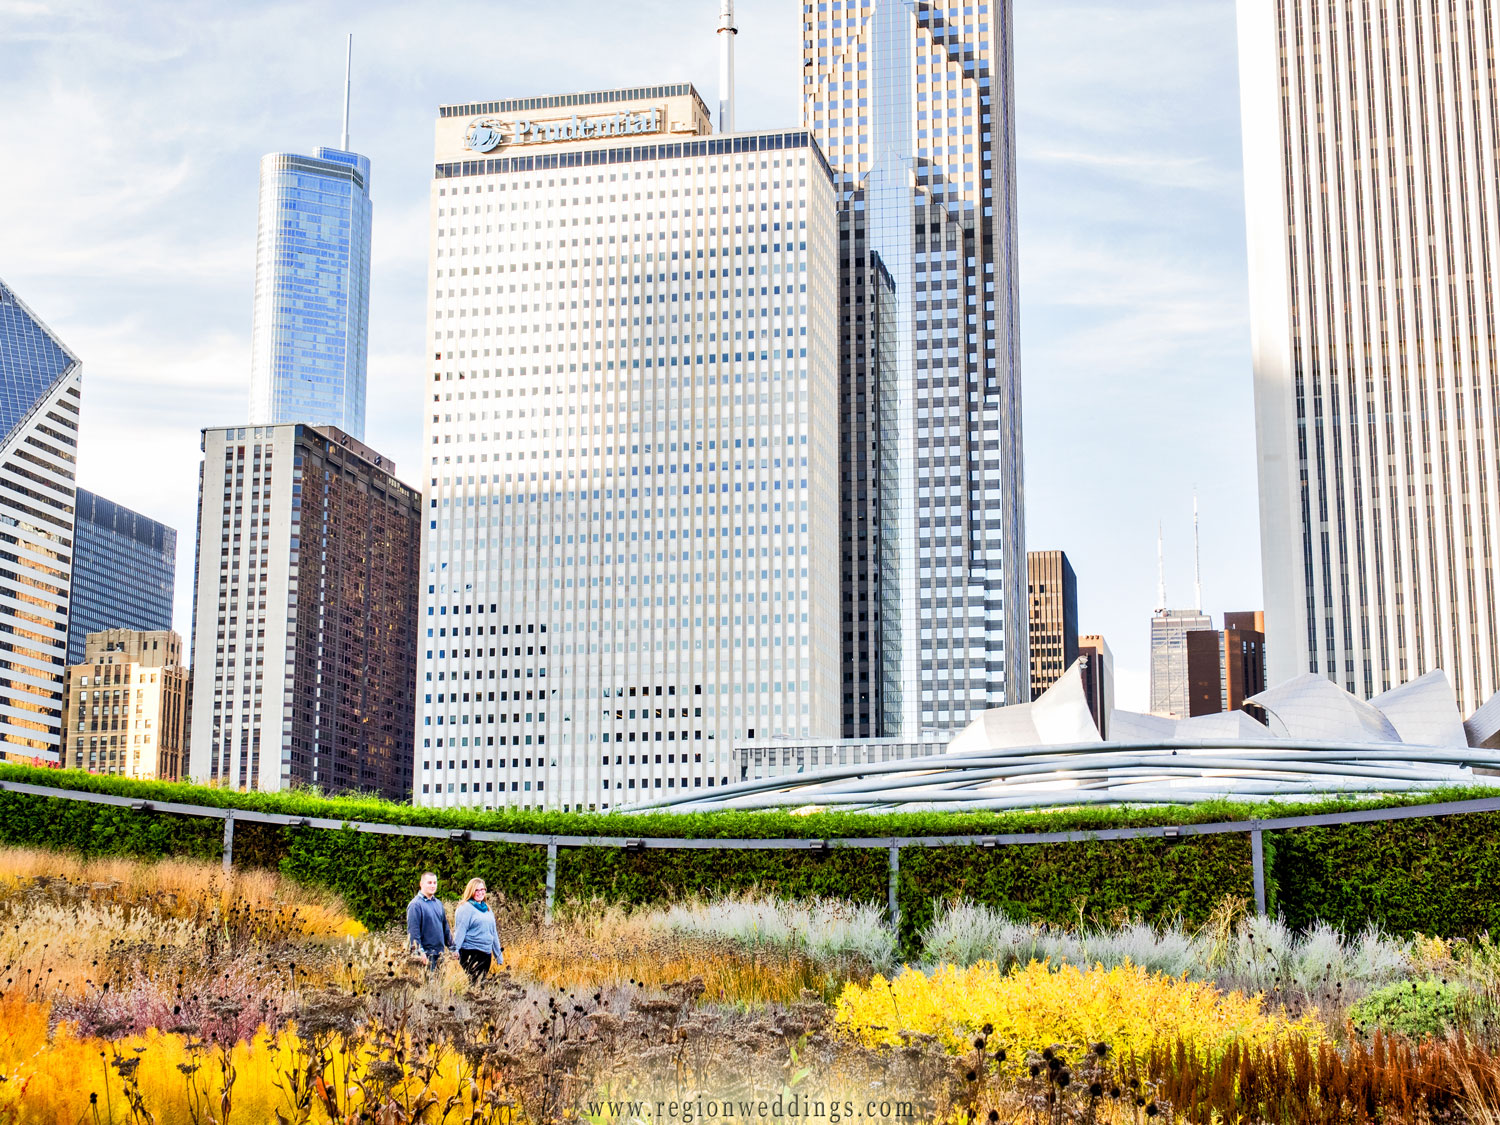 City skyscrapers as seen from the Millennium Gardens in this Chicago engagement photo.